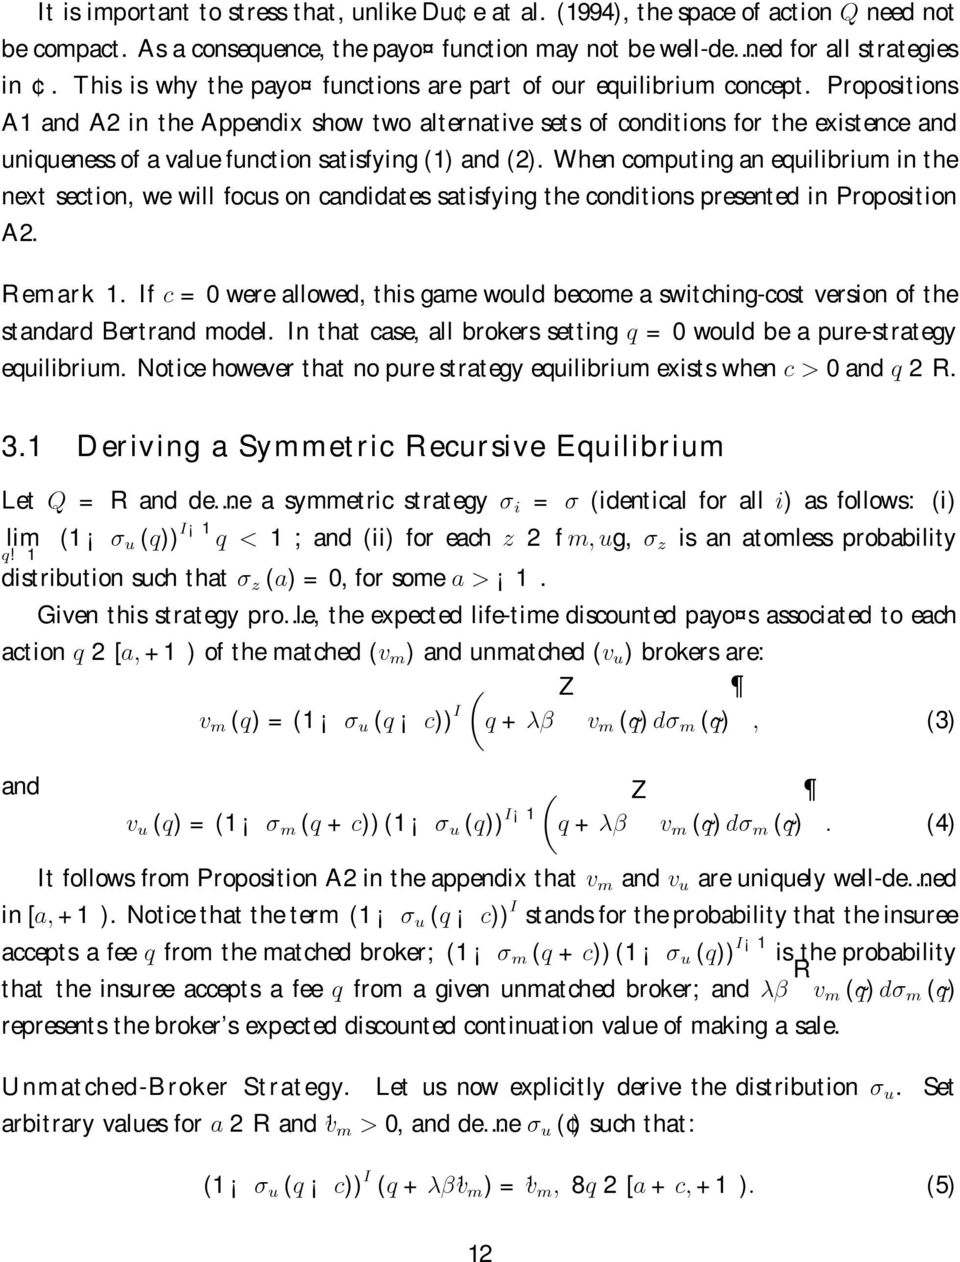 Propositions A1 and A2 in the Appendix show two alternative sets of conditions for the existence and uniqueness of a value function satisfying (1) and (2).